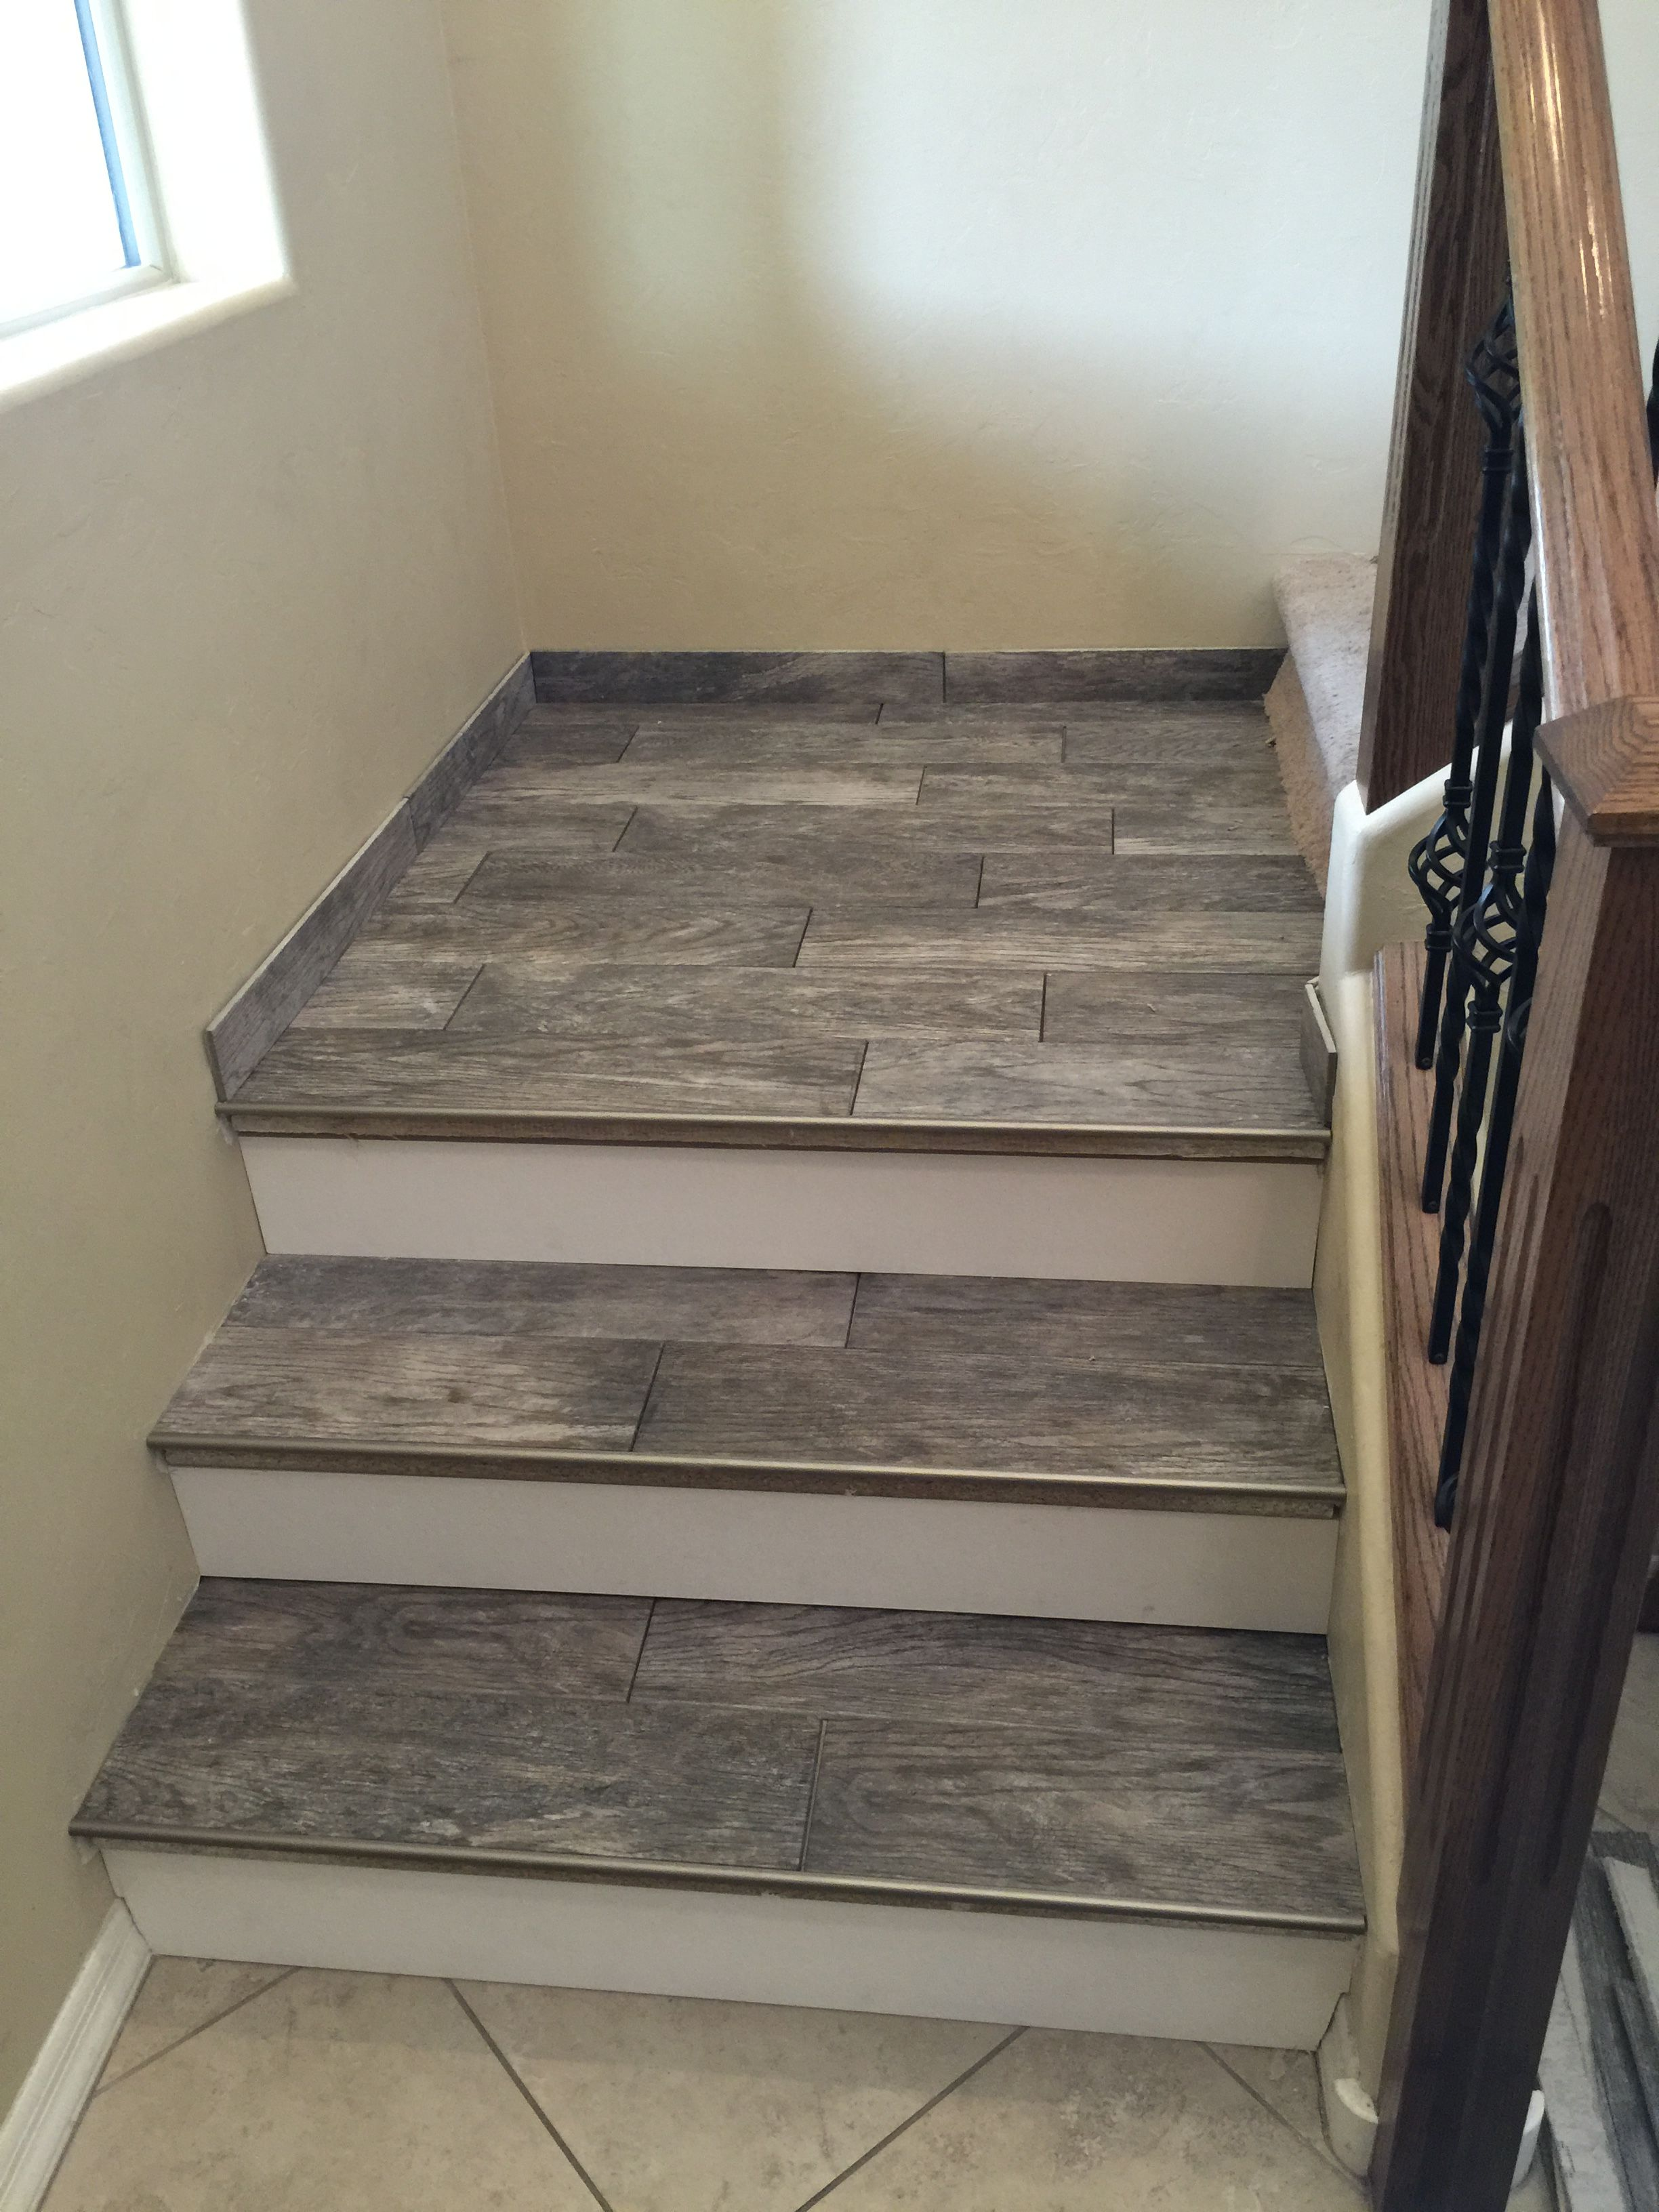 Porcelain wood look tile stairs | Design and build ...